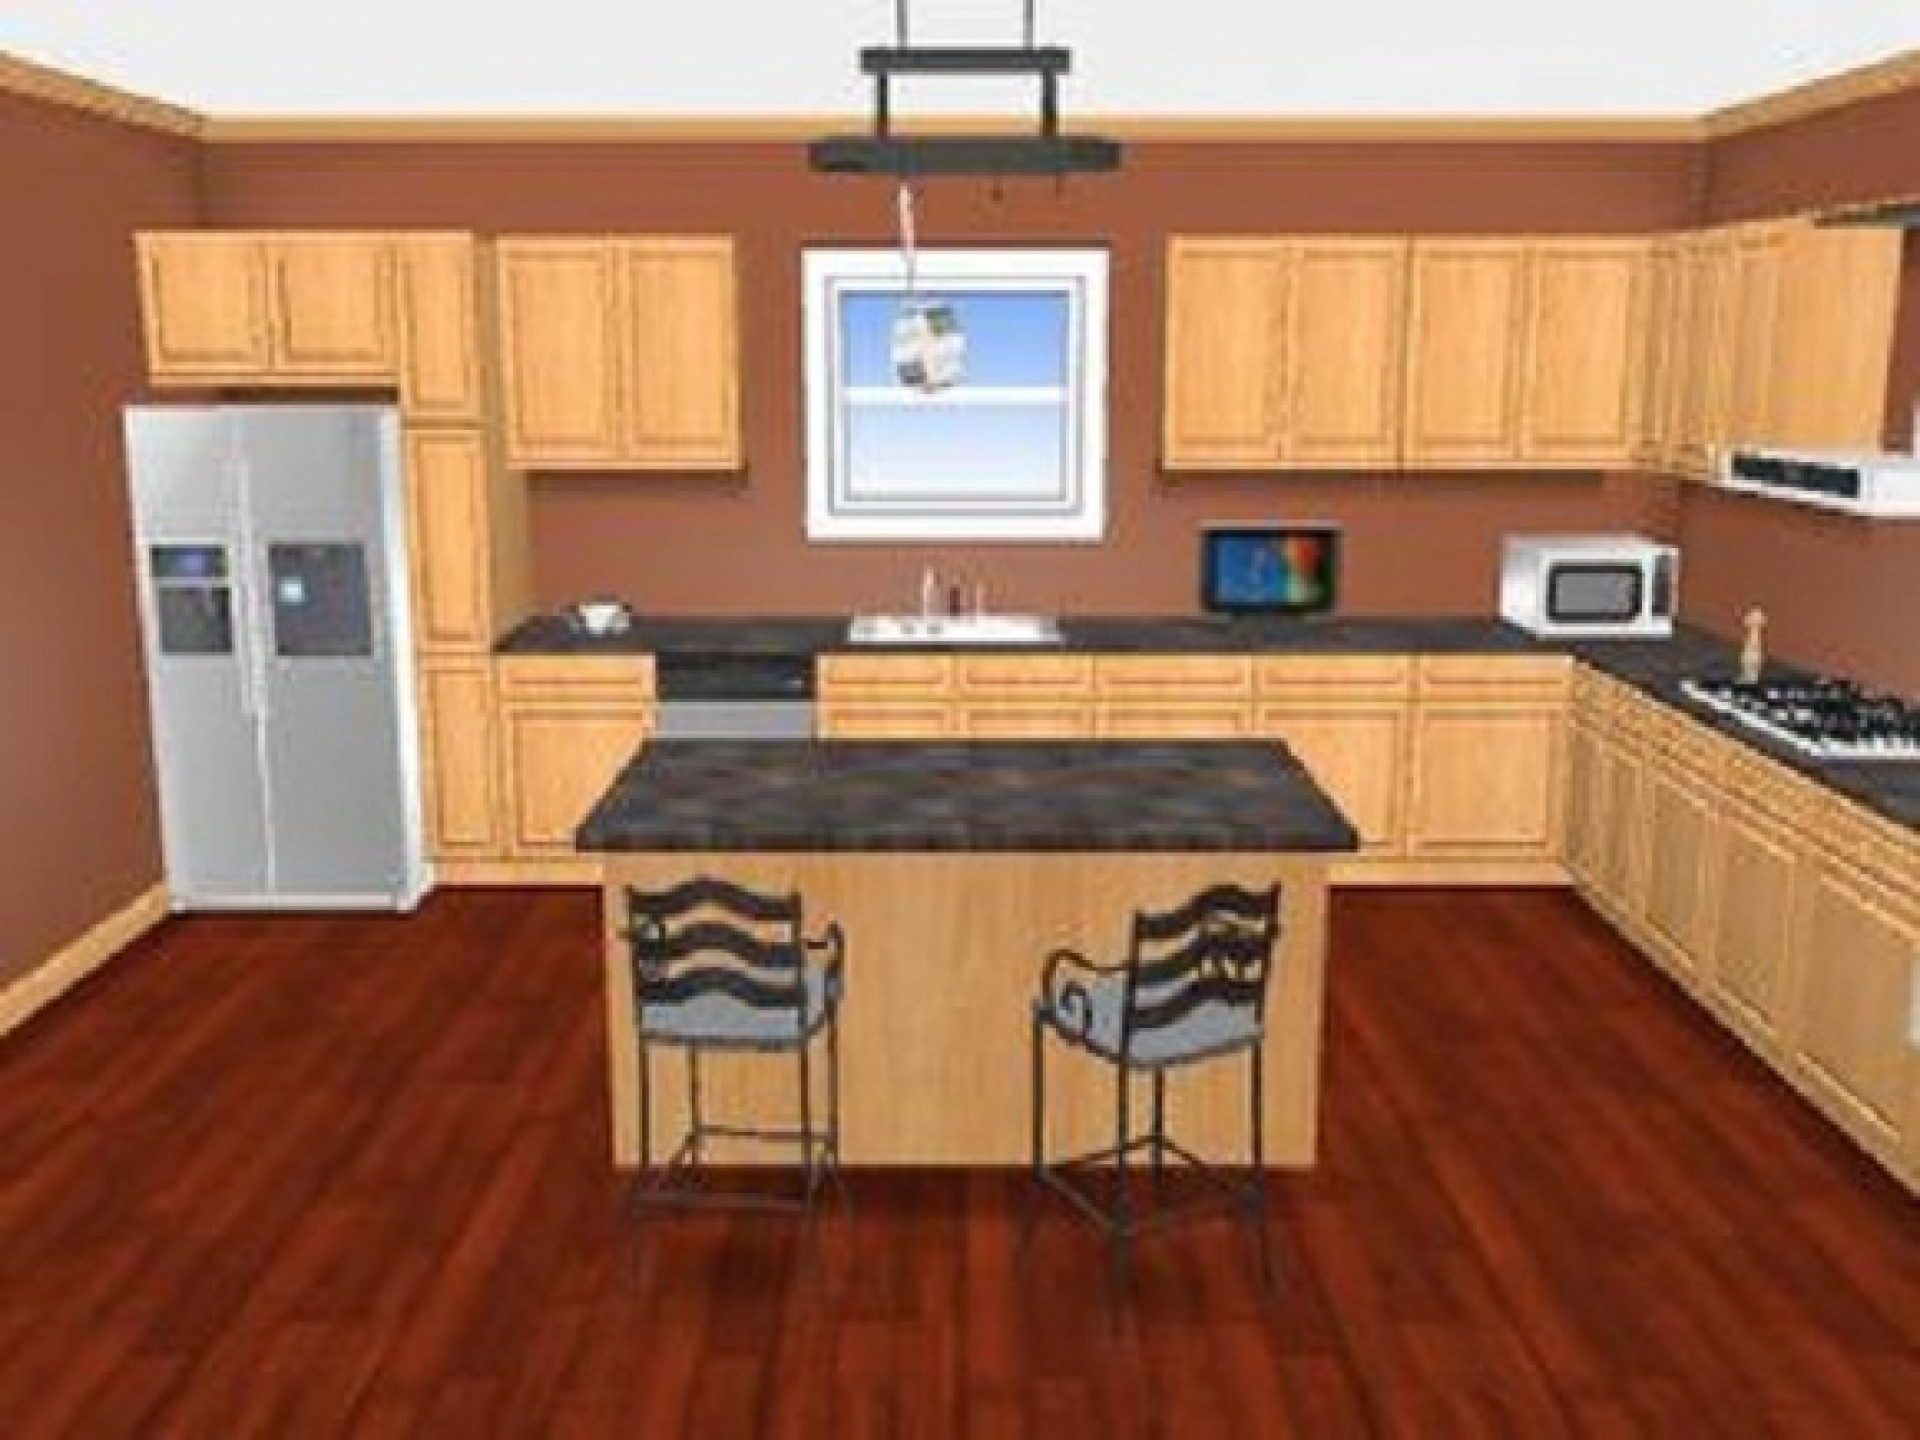 Best ideas about Cabinet Design Online . Save or Pin Kitchen Cabinet Designer line Free – Wow Blog Now.